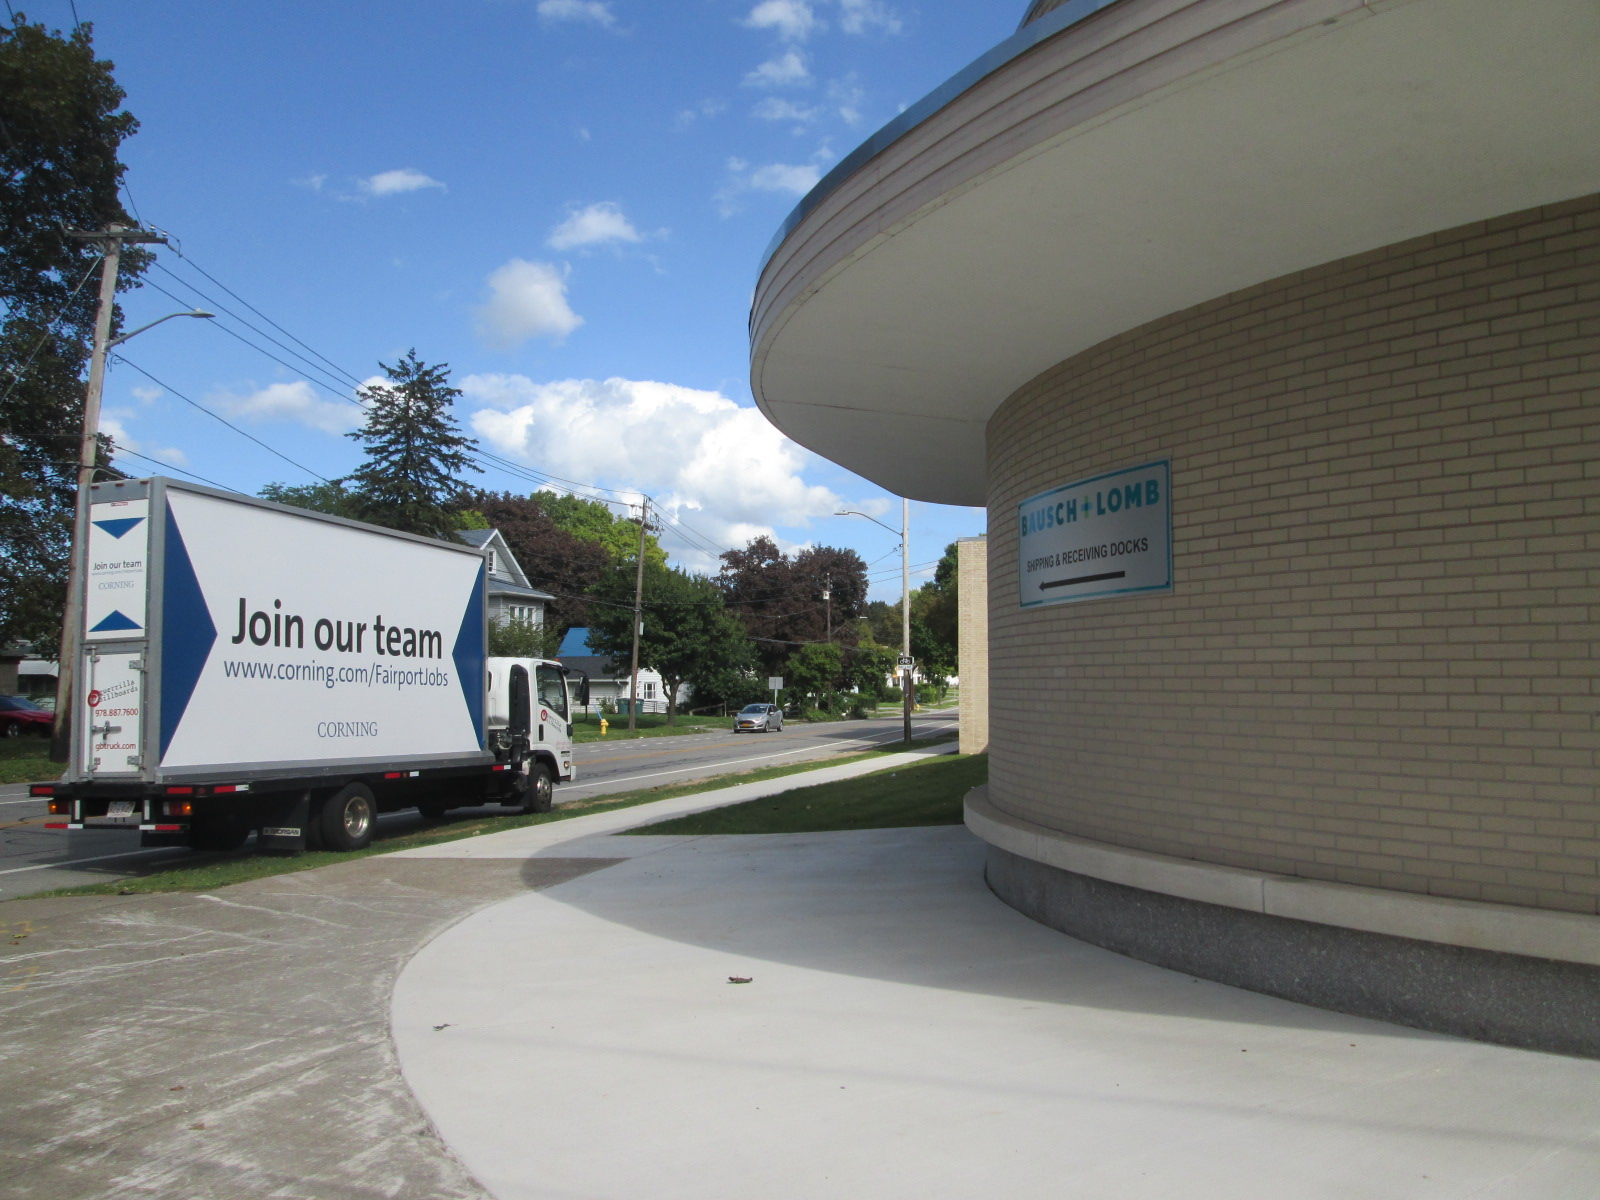 Join Our Team Mobile Billboard at Bausch & Lomb